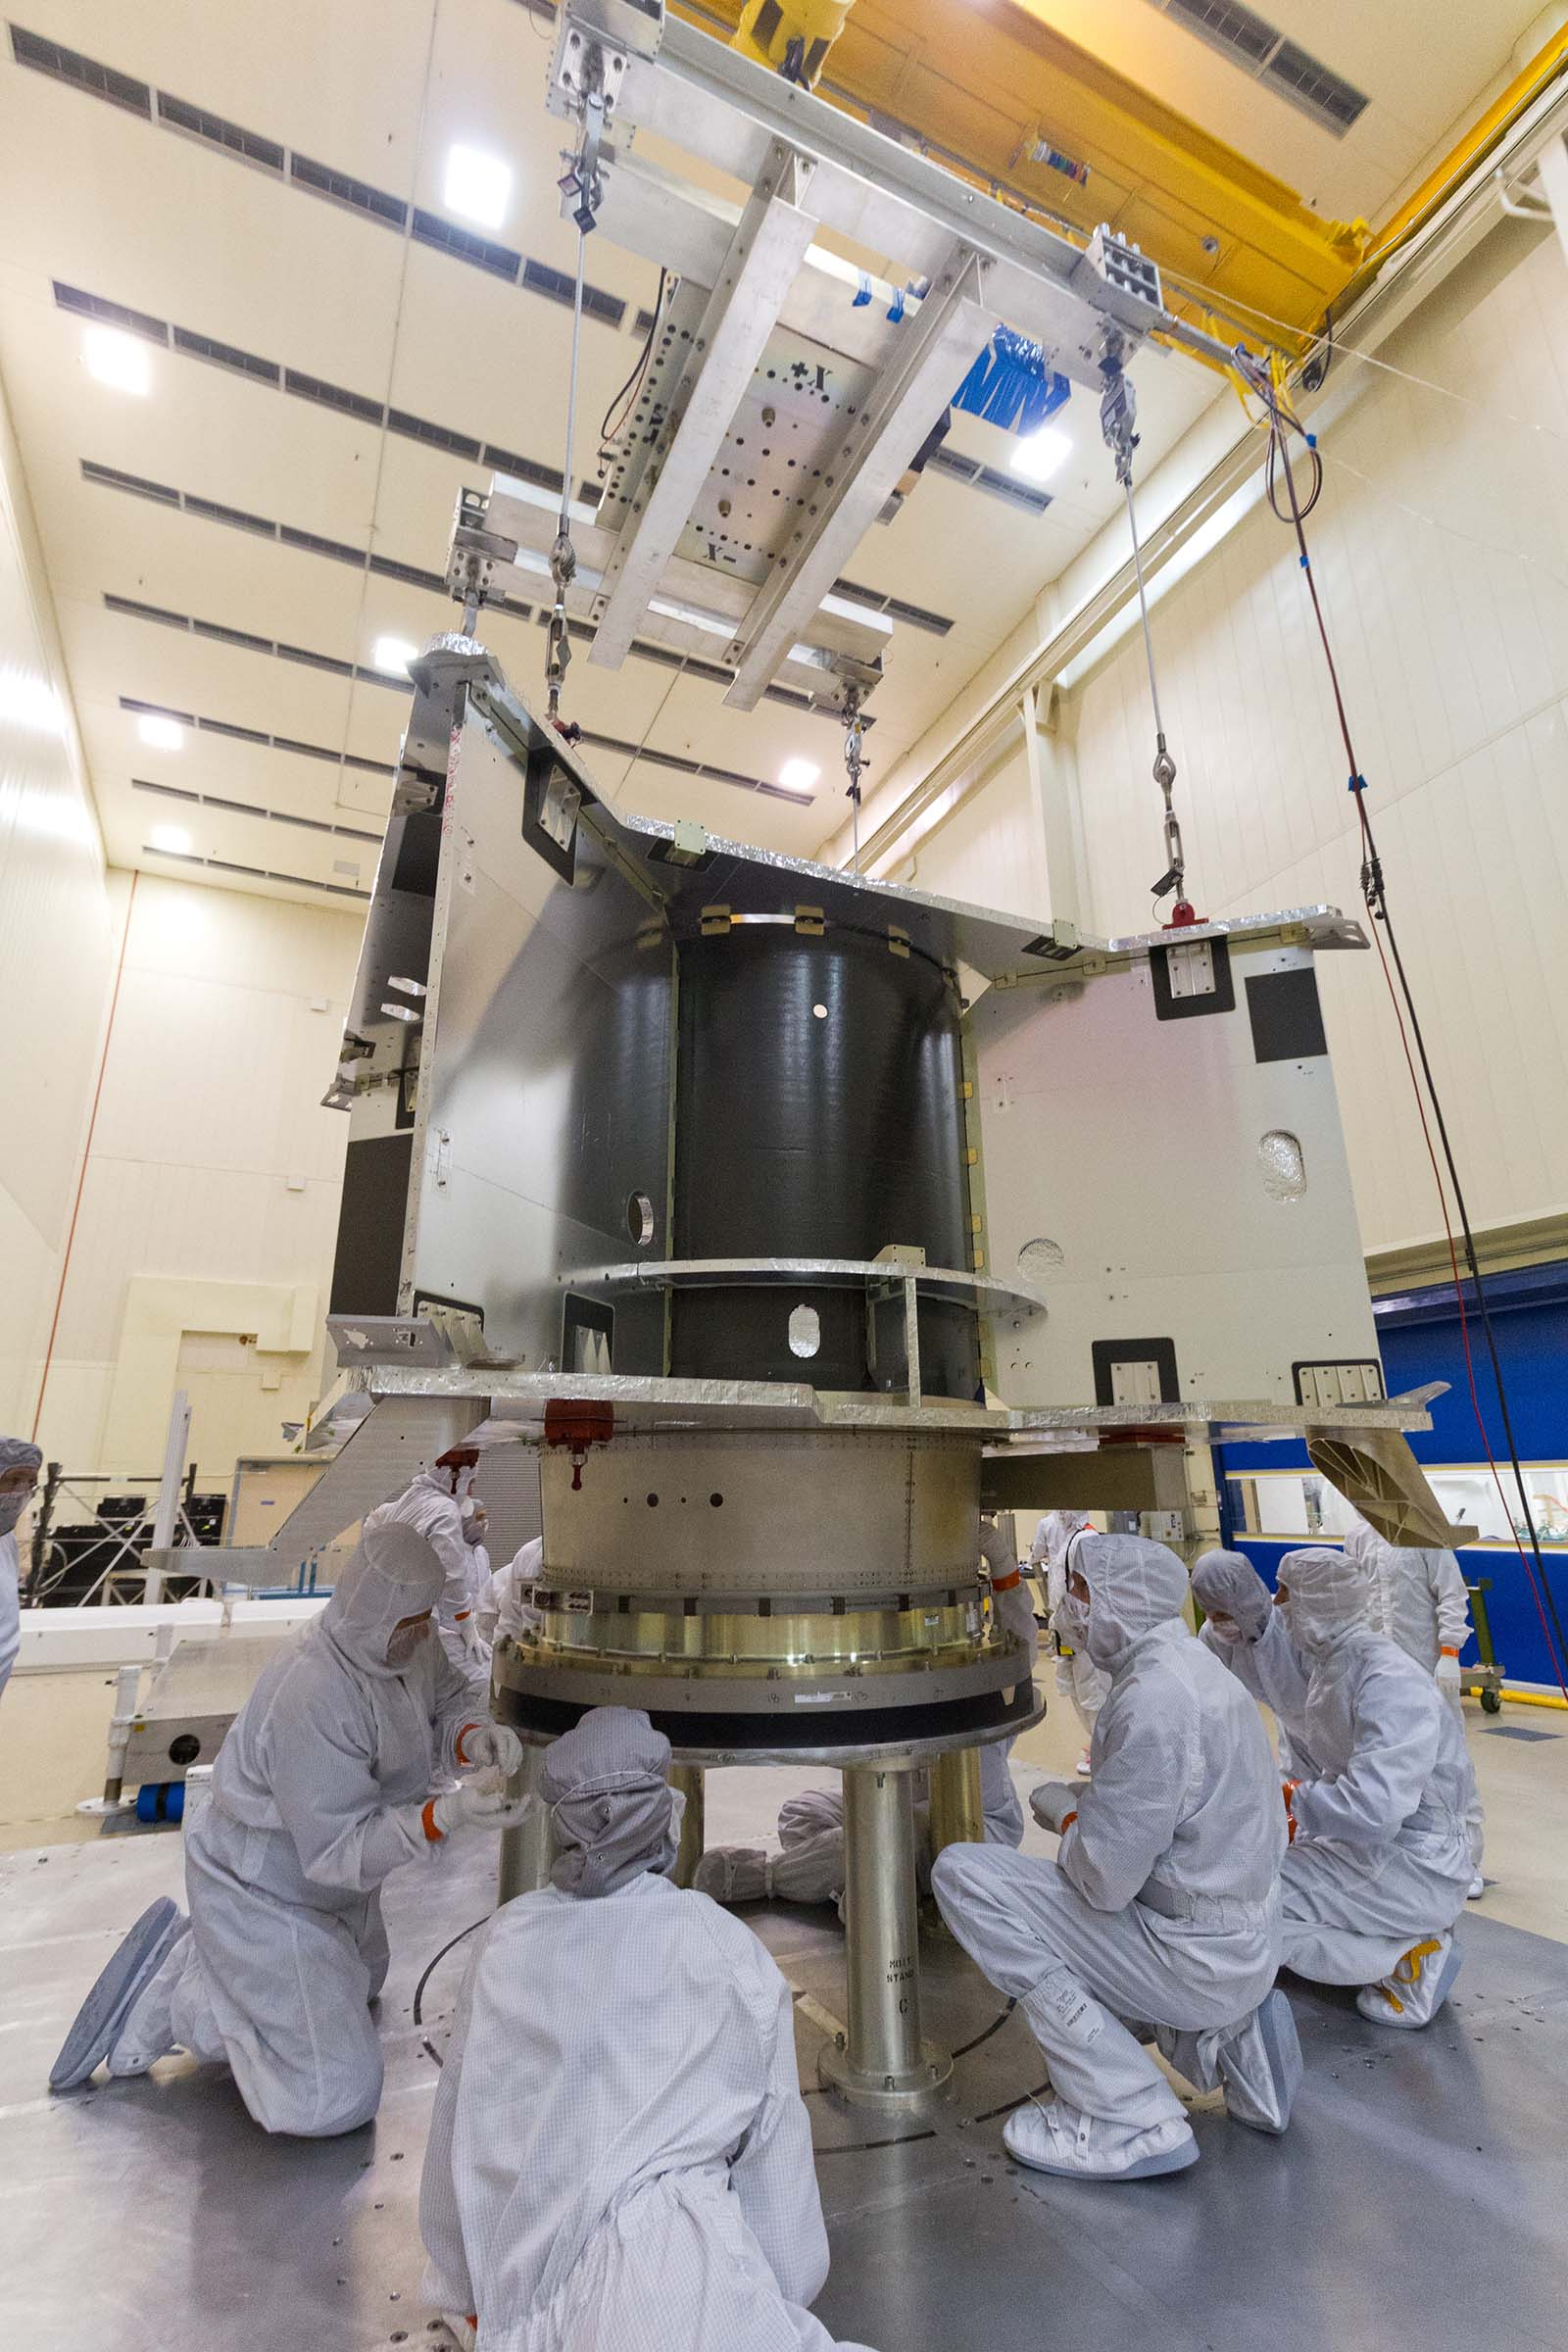 Completion of the OSIRIS-REx main propellant tank integration with the spacecraft structure.